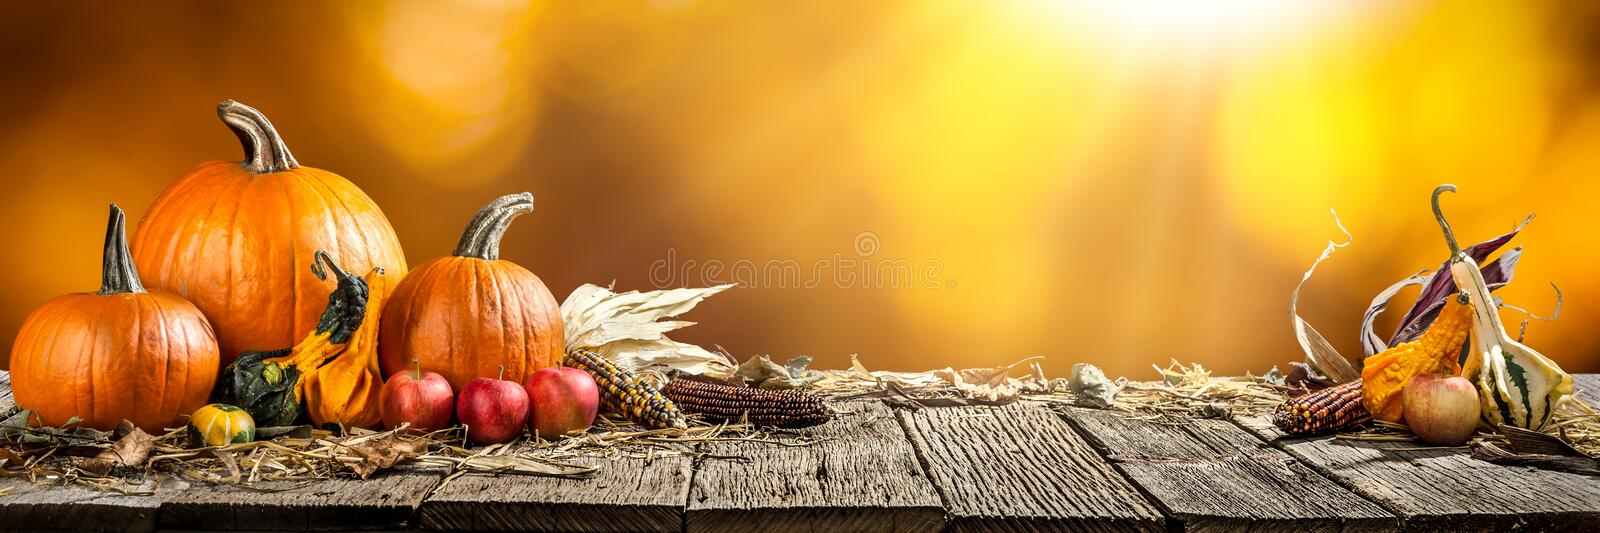 Happy Thanksgiving Day. Happy Thanksgiving With Pumpkins Apples And Corncobs On Wooden Table With Orange Background stock image